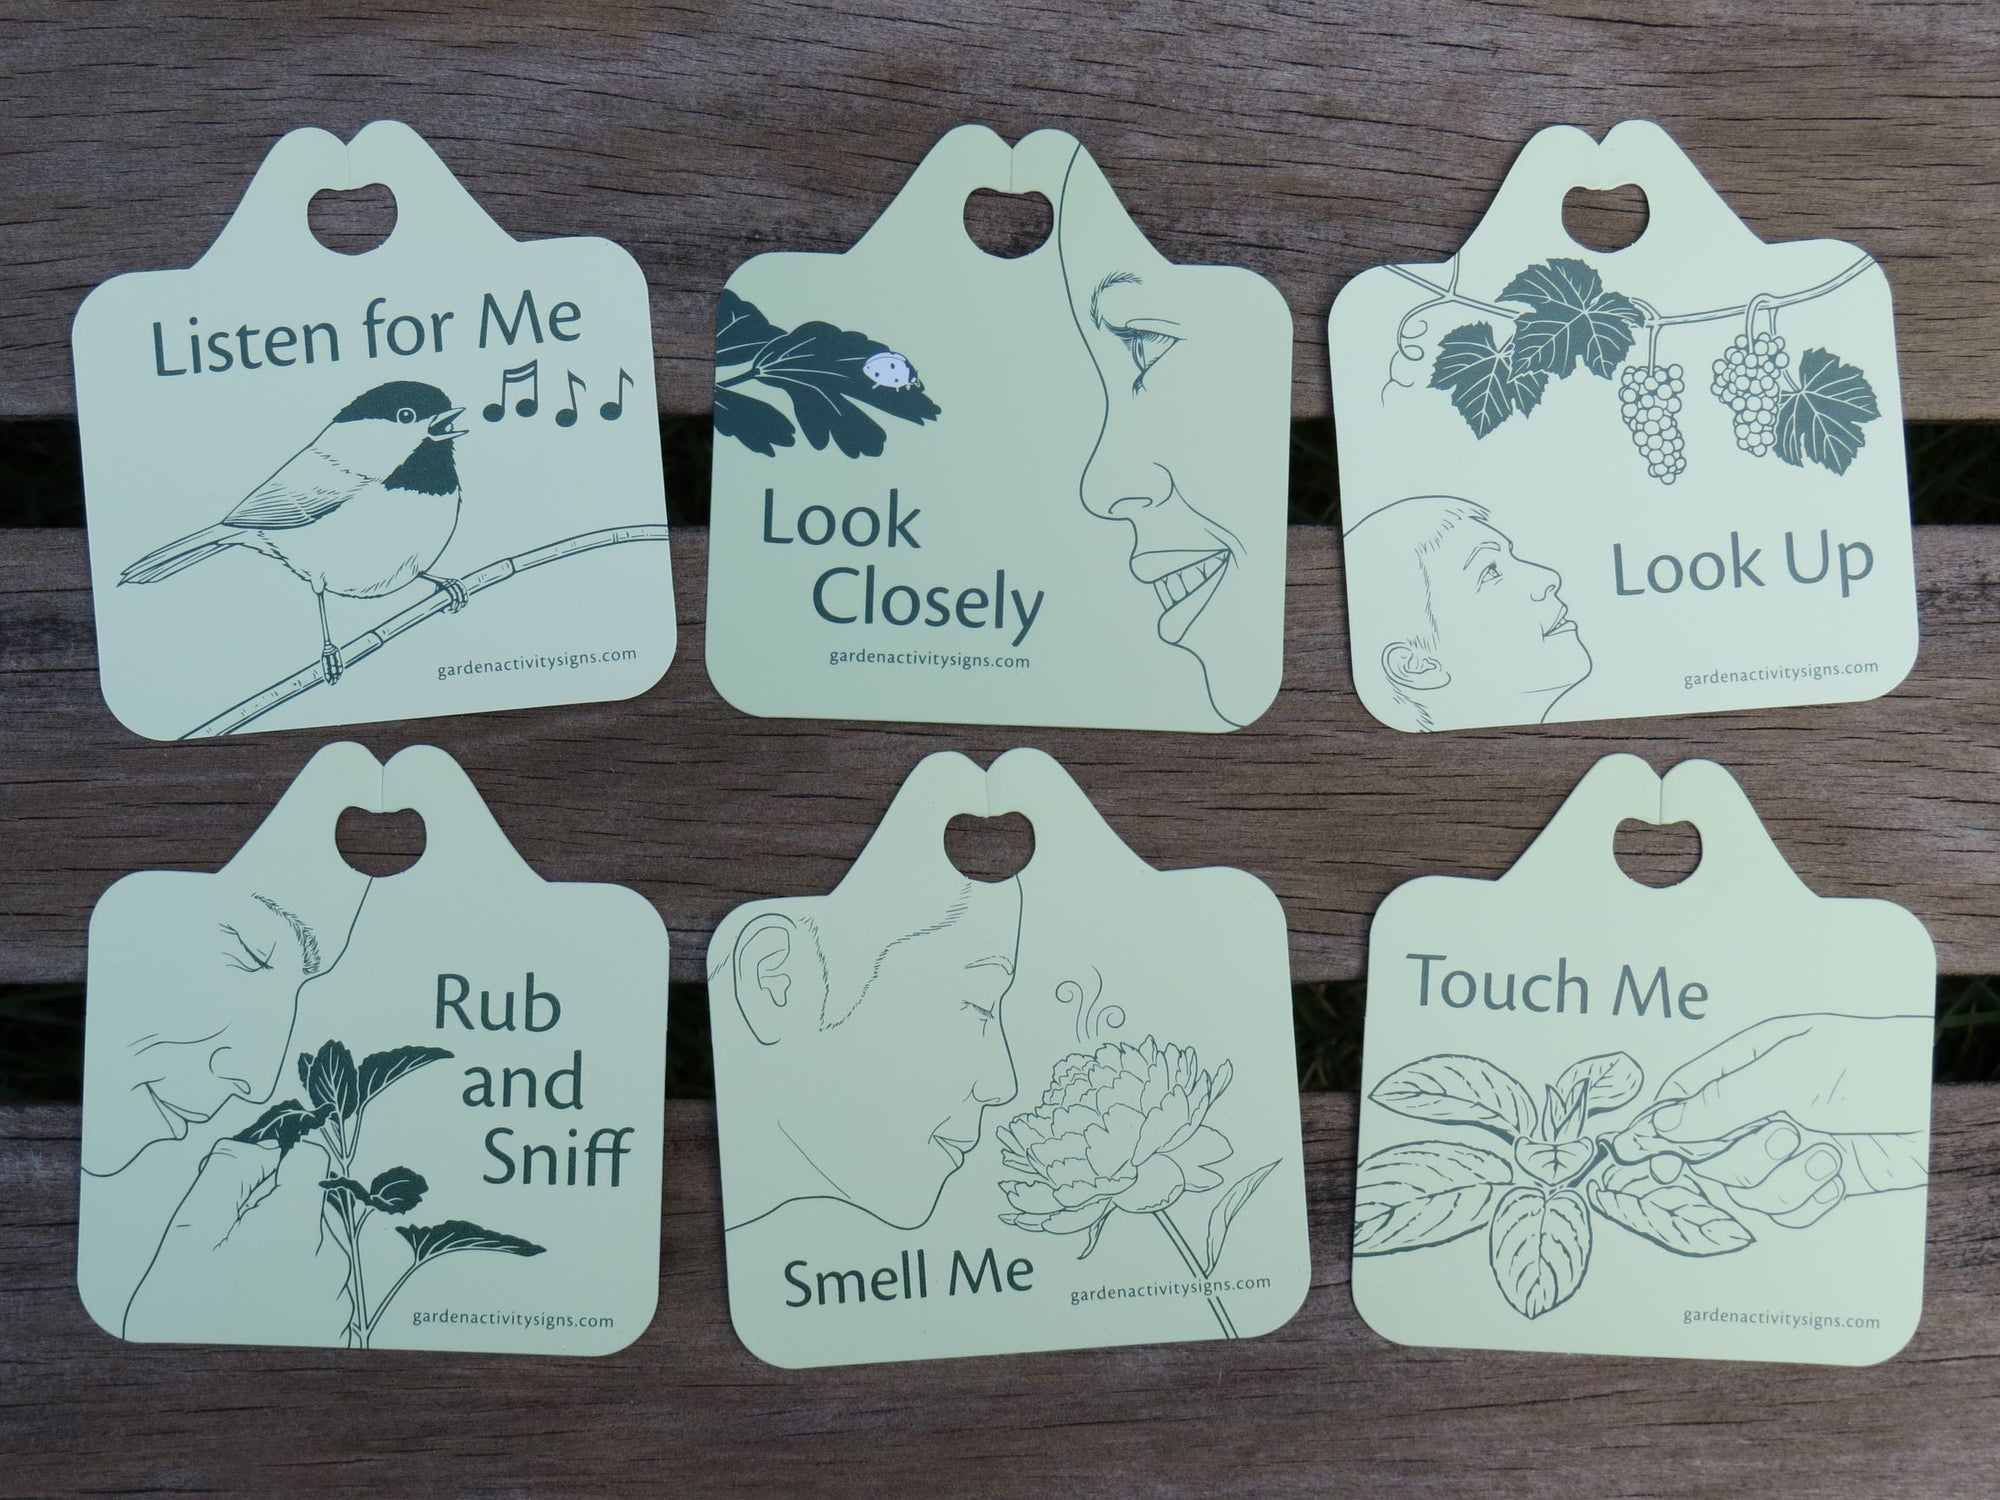 Sensory garden illustrated plant tags, set of 6 includes listen for me, look closely, look up, rub and sniff, smell me and touch me